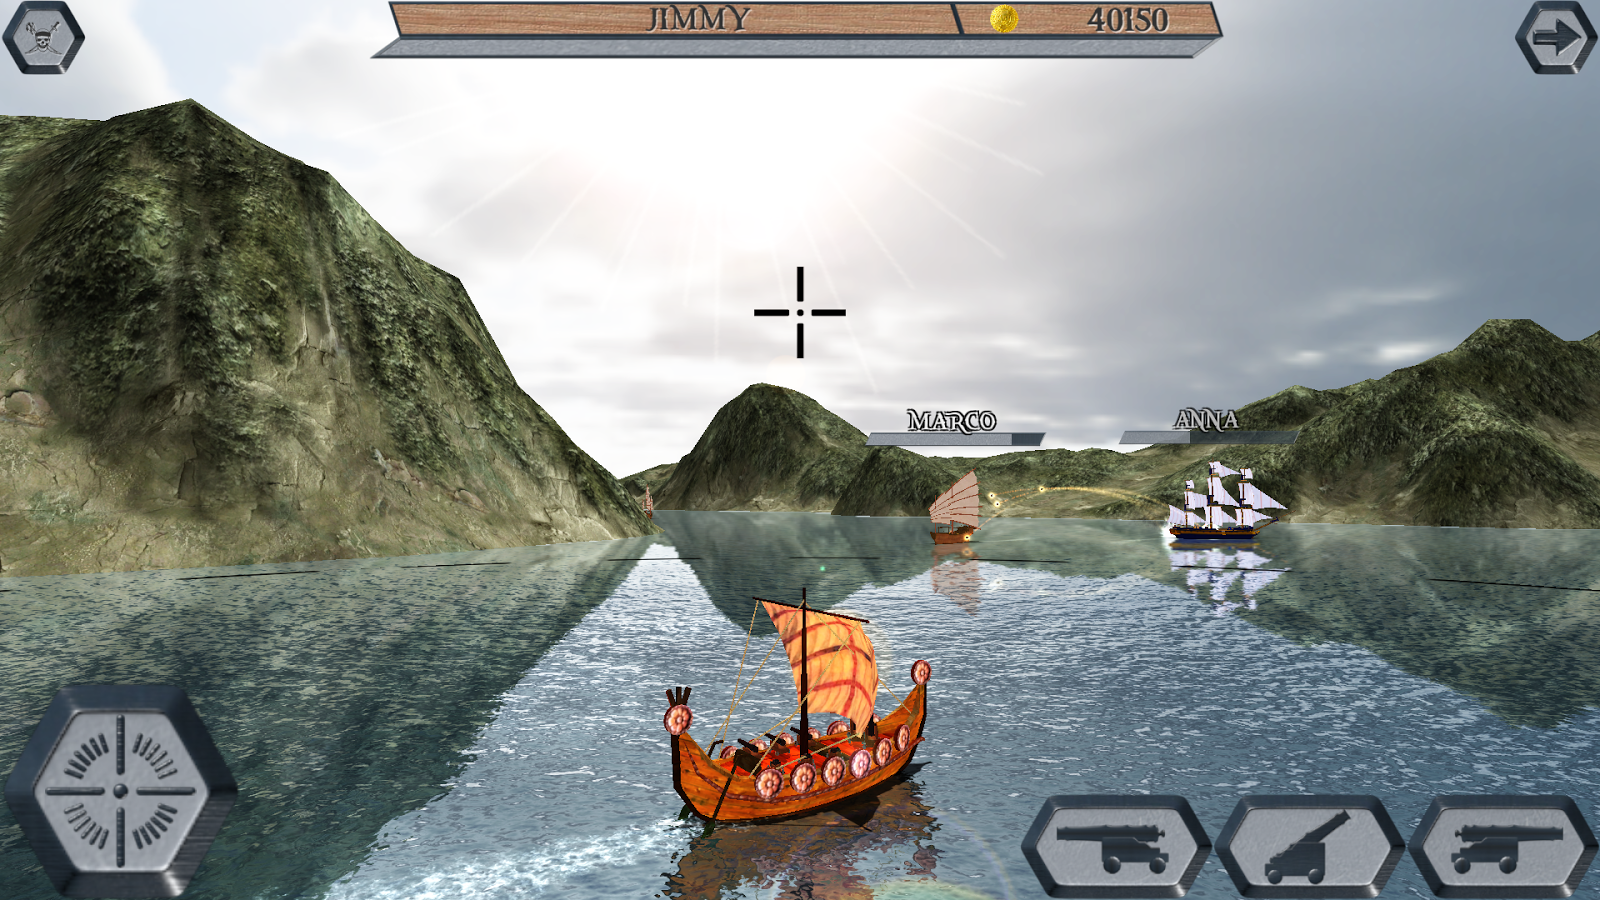 World Of Pirate Ships Screenshot 3